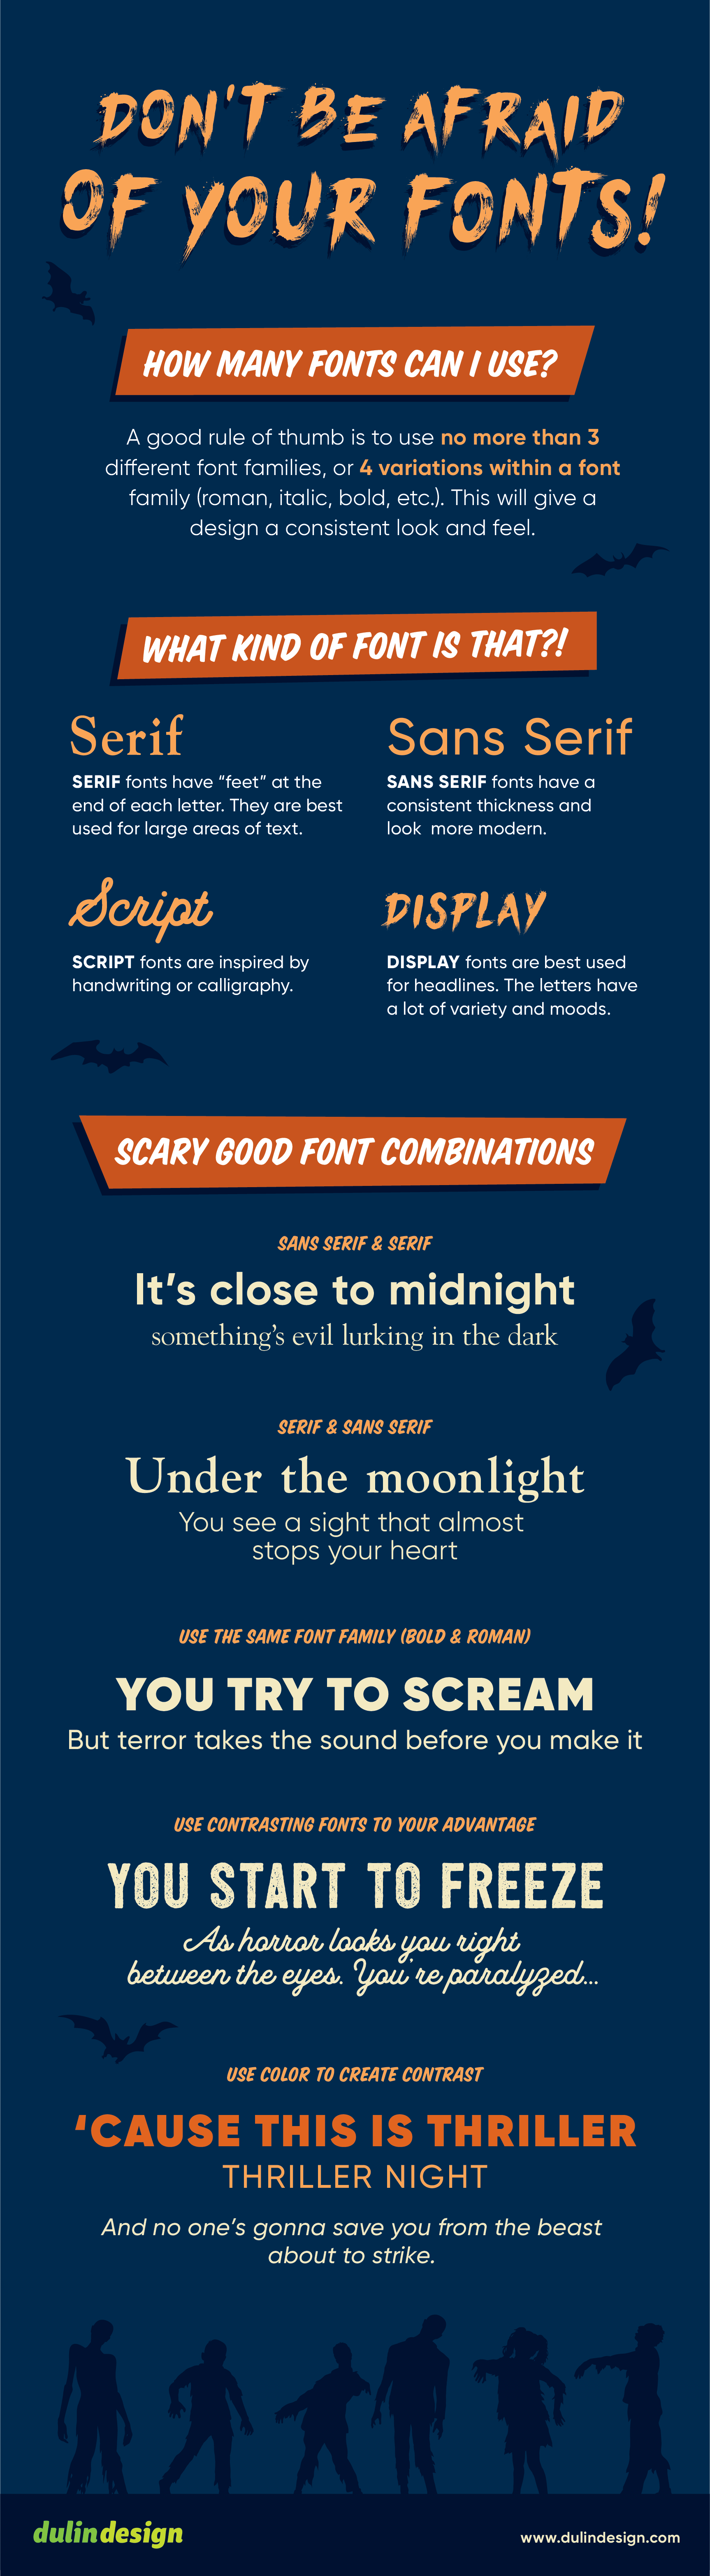 Don't be afraid of your fonts!